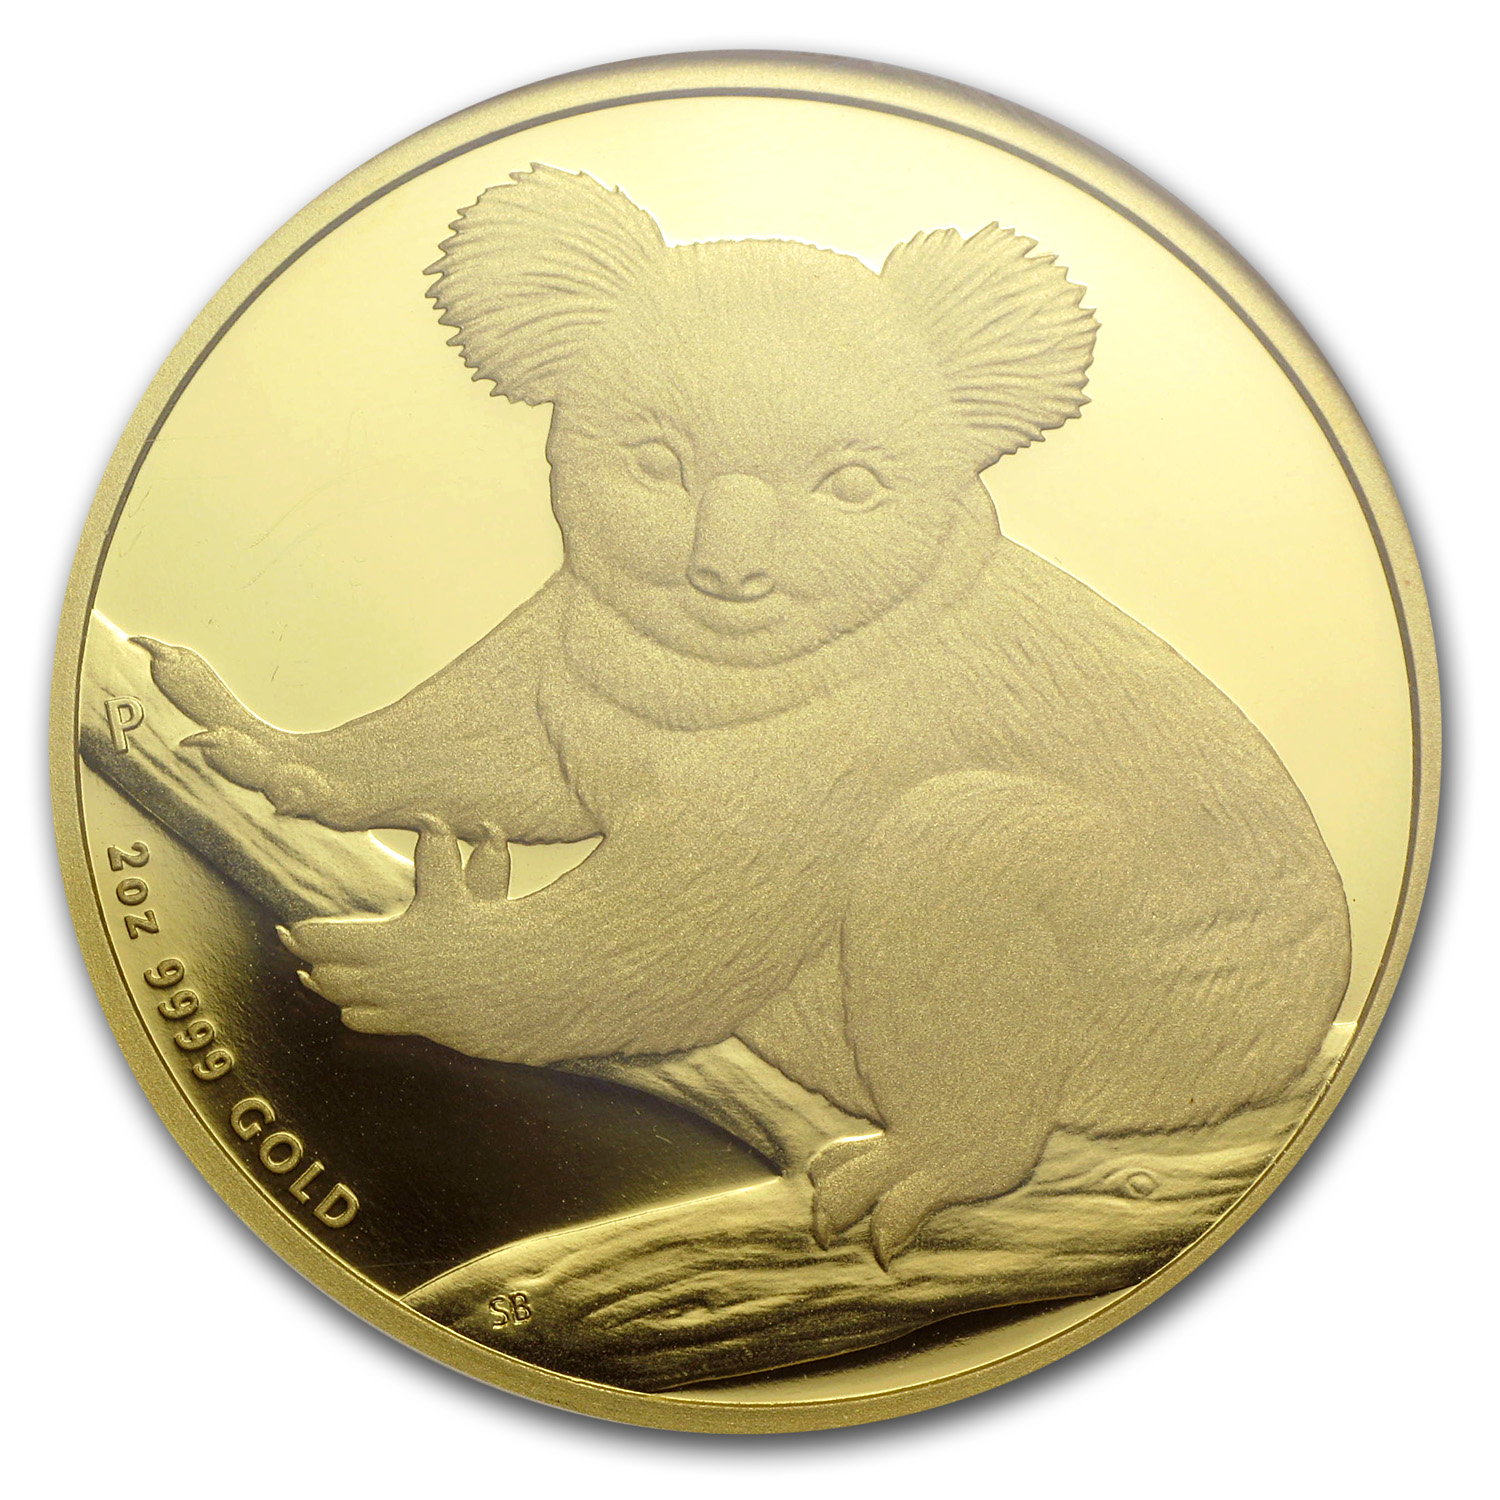 2009 2 oz Proof Australian Gold Koala PF-69 NGC